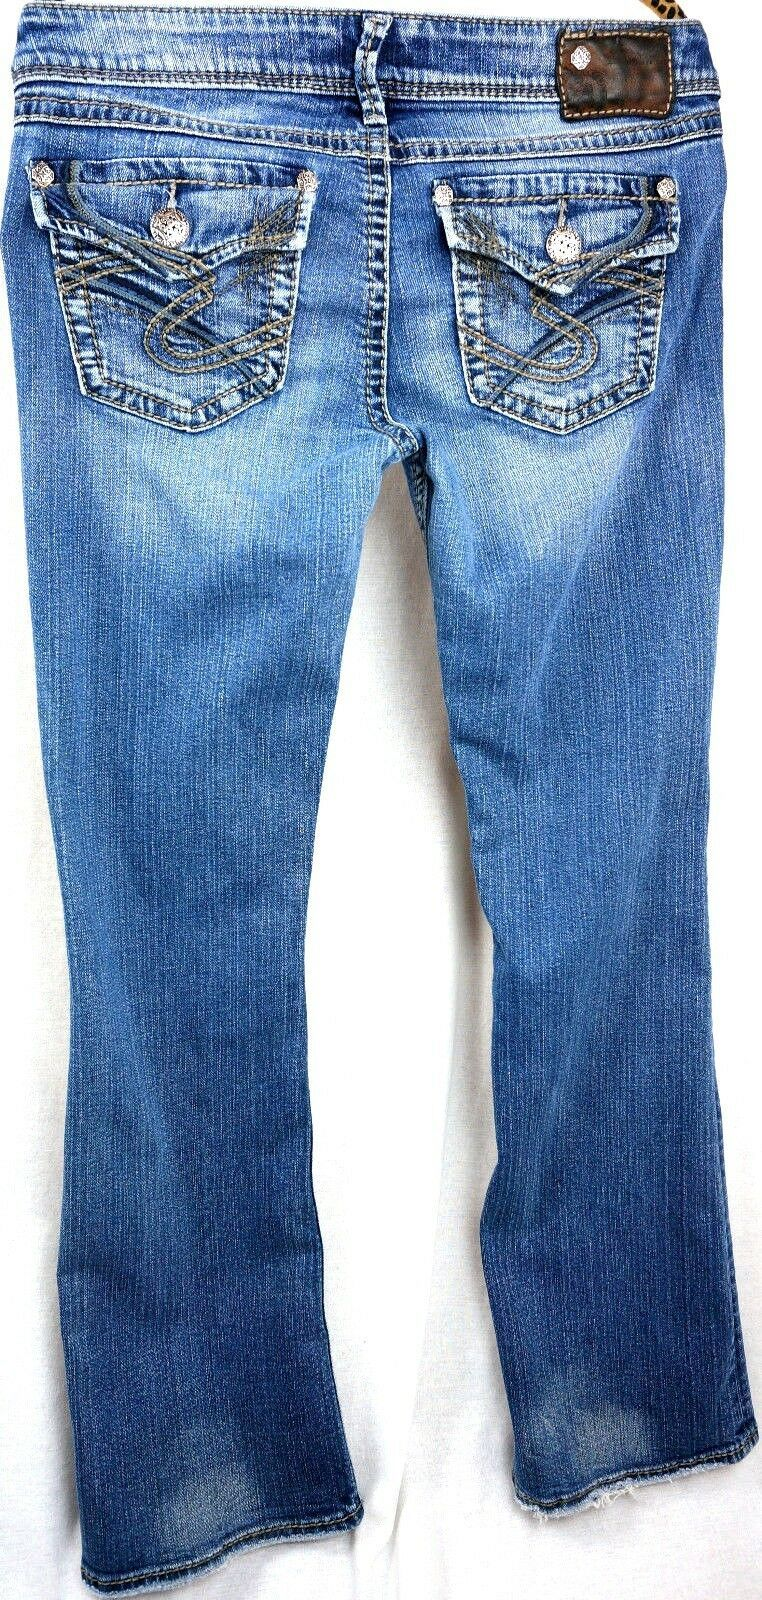 Primary image for Silver Jeans Size 28 x30 Pioneer Womens Bootcut Low Rise Medium Wash Pants